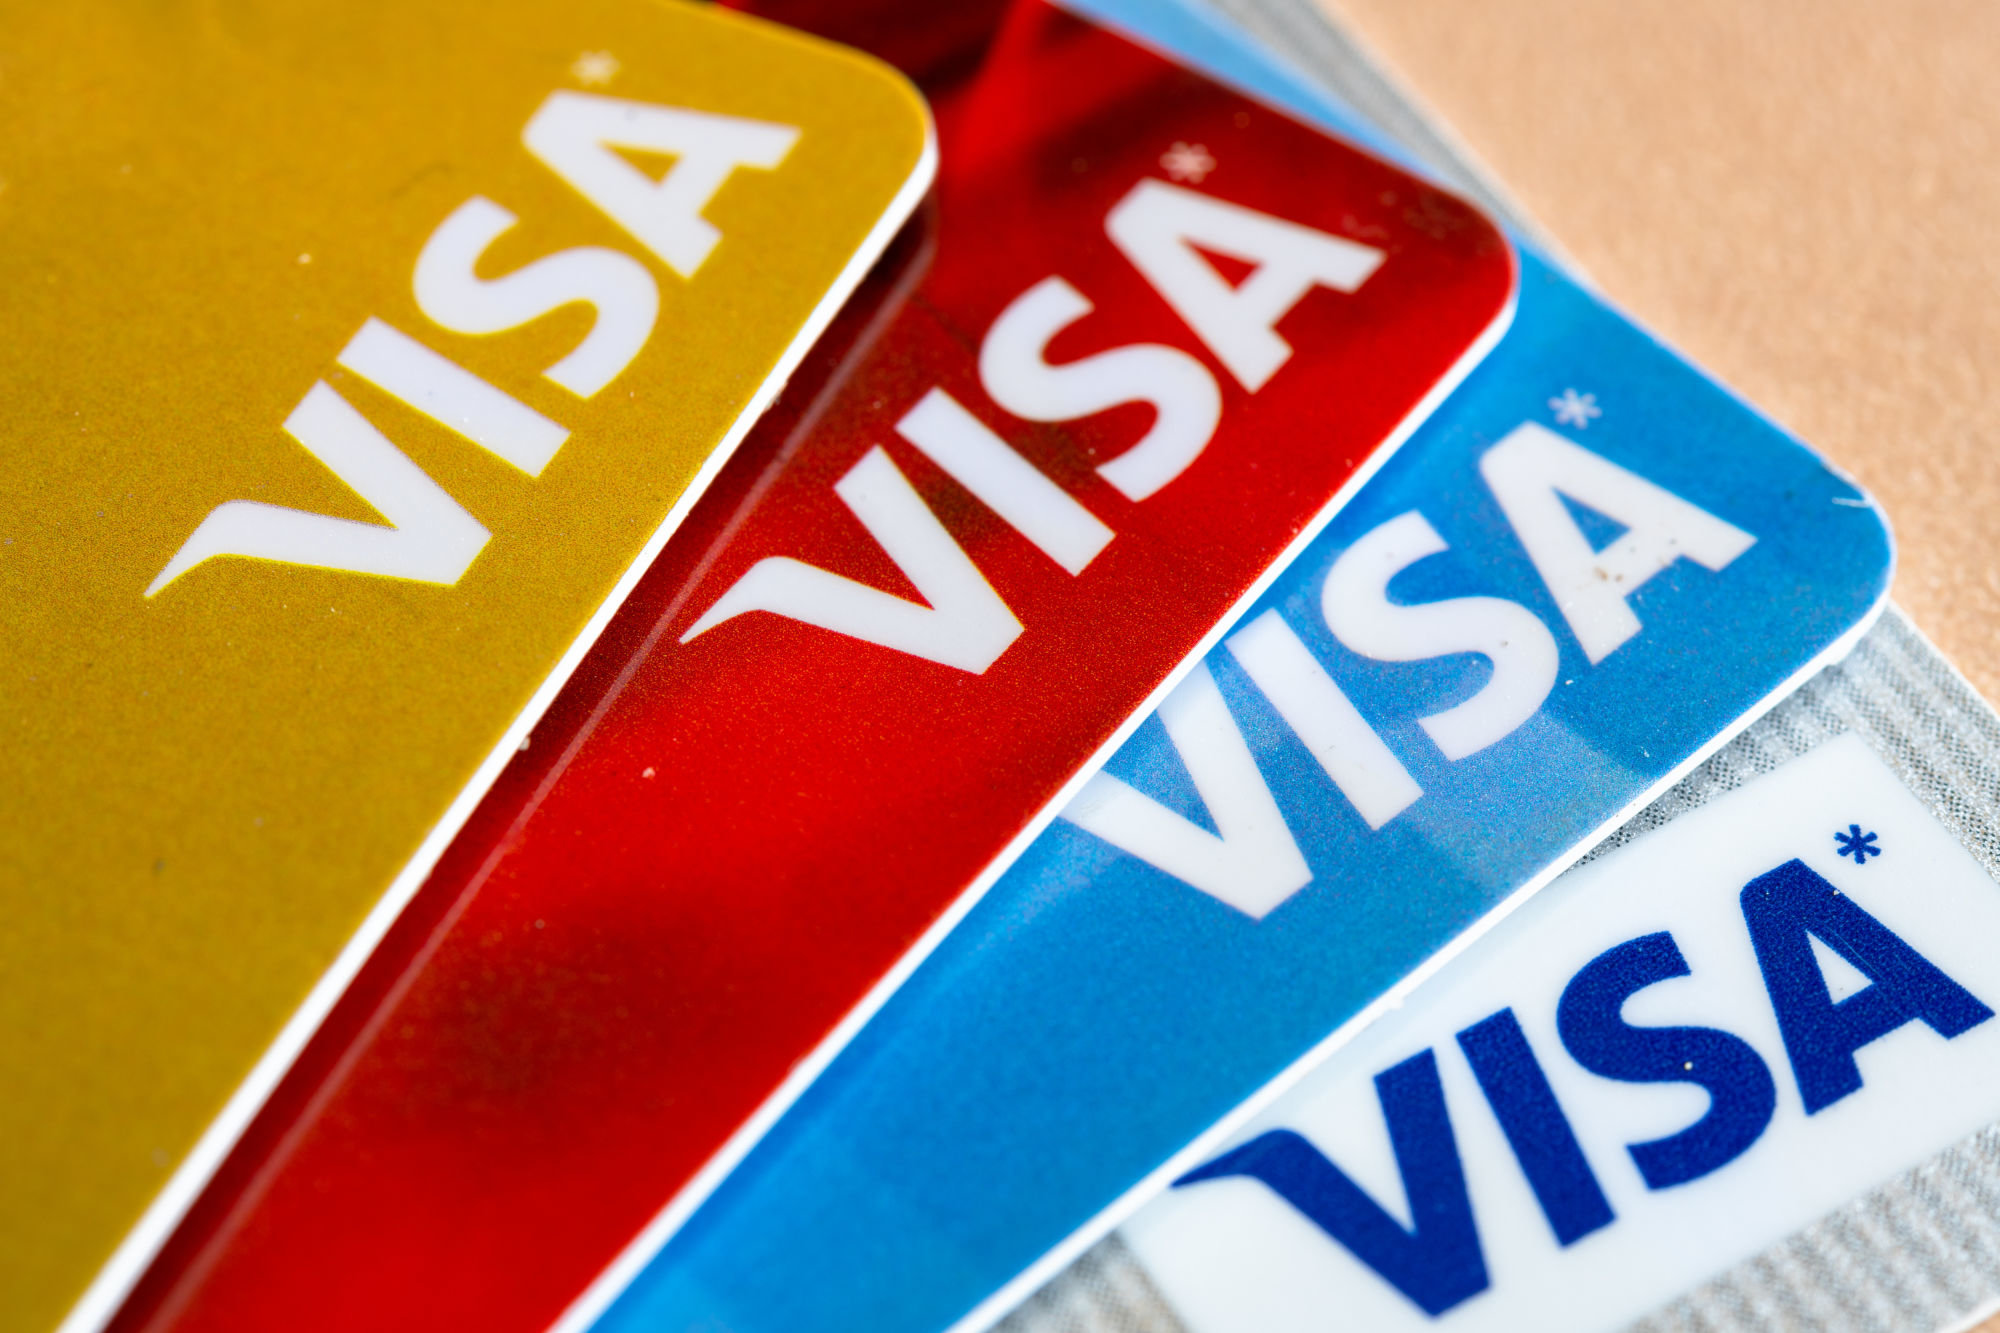 UK To Launch Global Talent Visa to Attract Top Researchers and Scientists